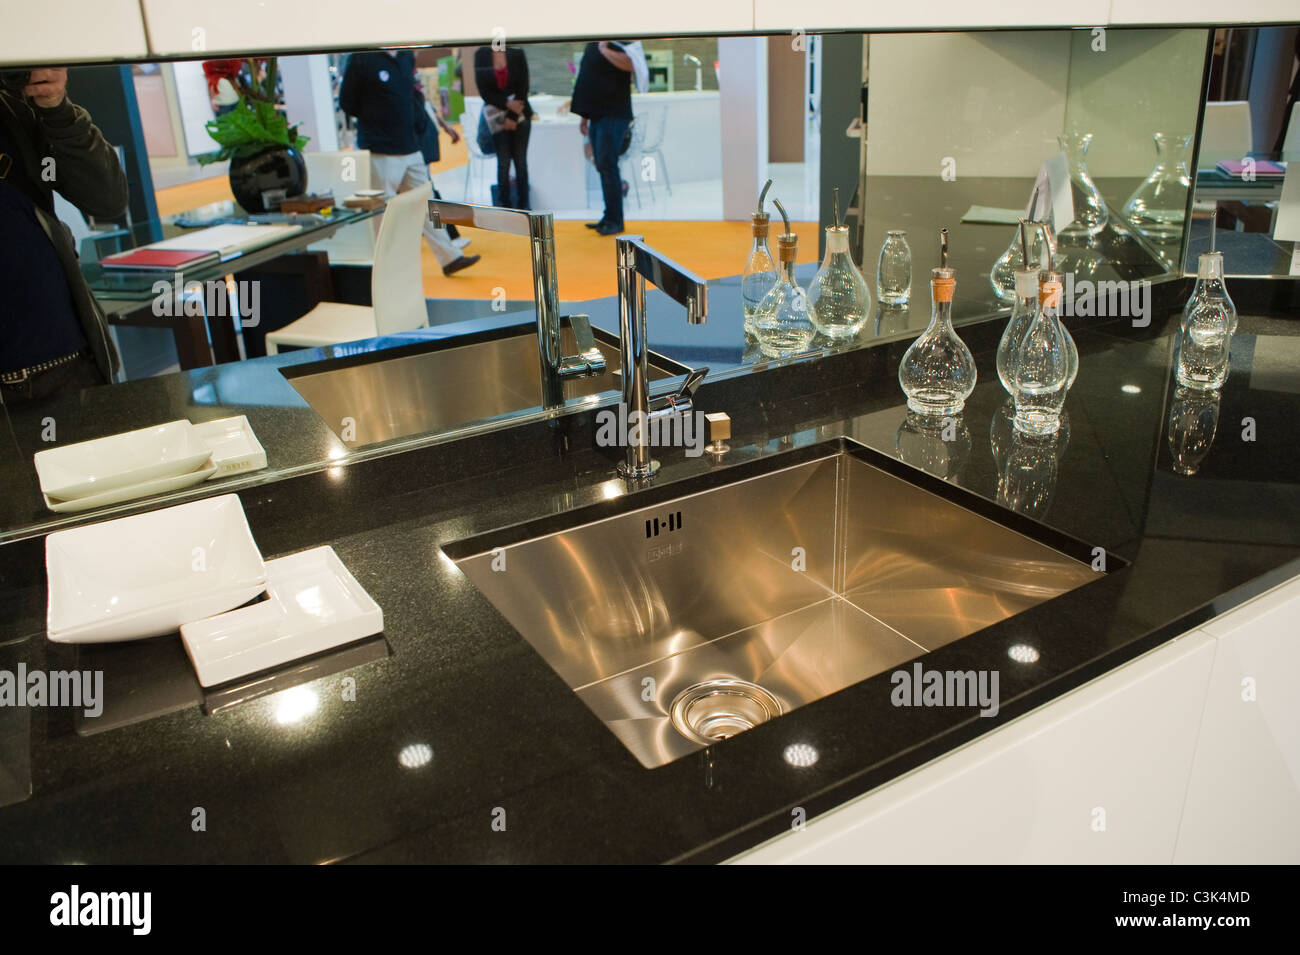 Paris, France, French Design Kitchen Sink at Trade Show, Modern Contemporary Interiors 'Gillis Cuisines' - Stock Image